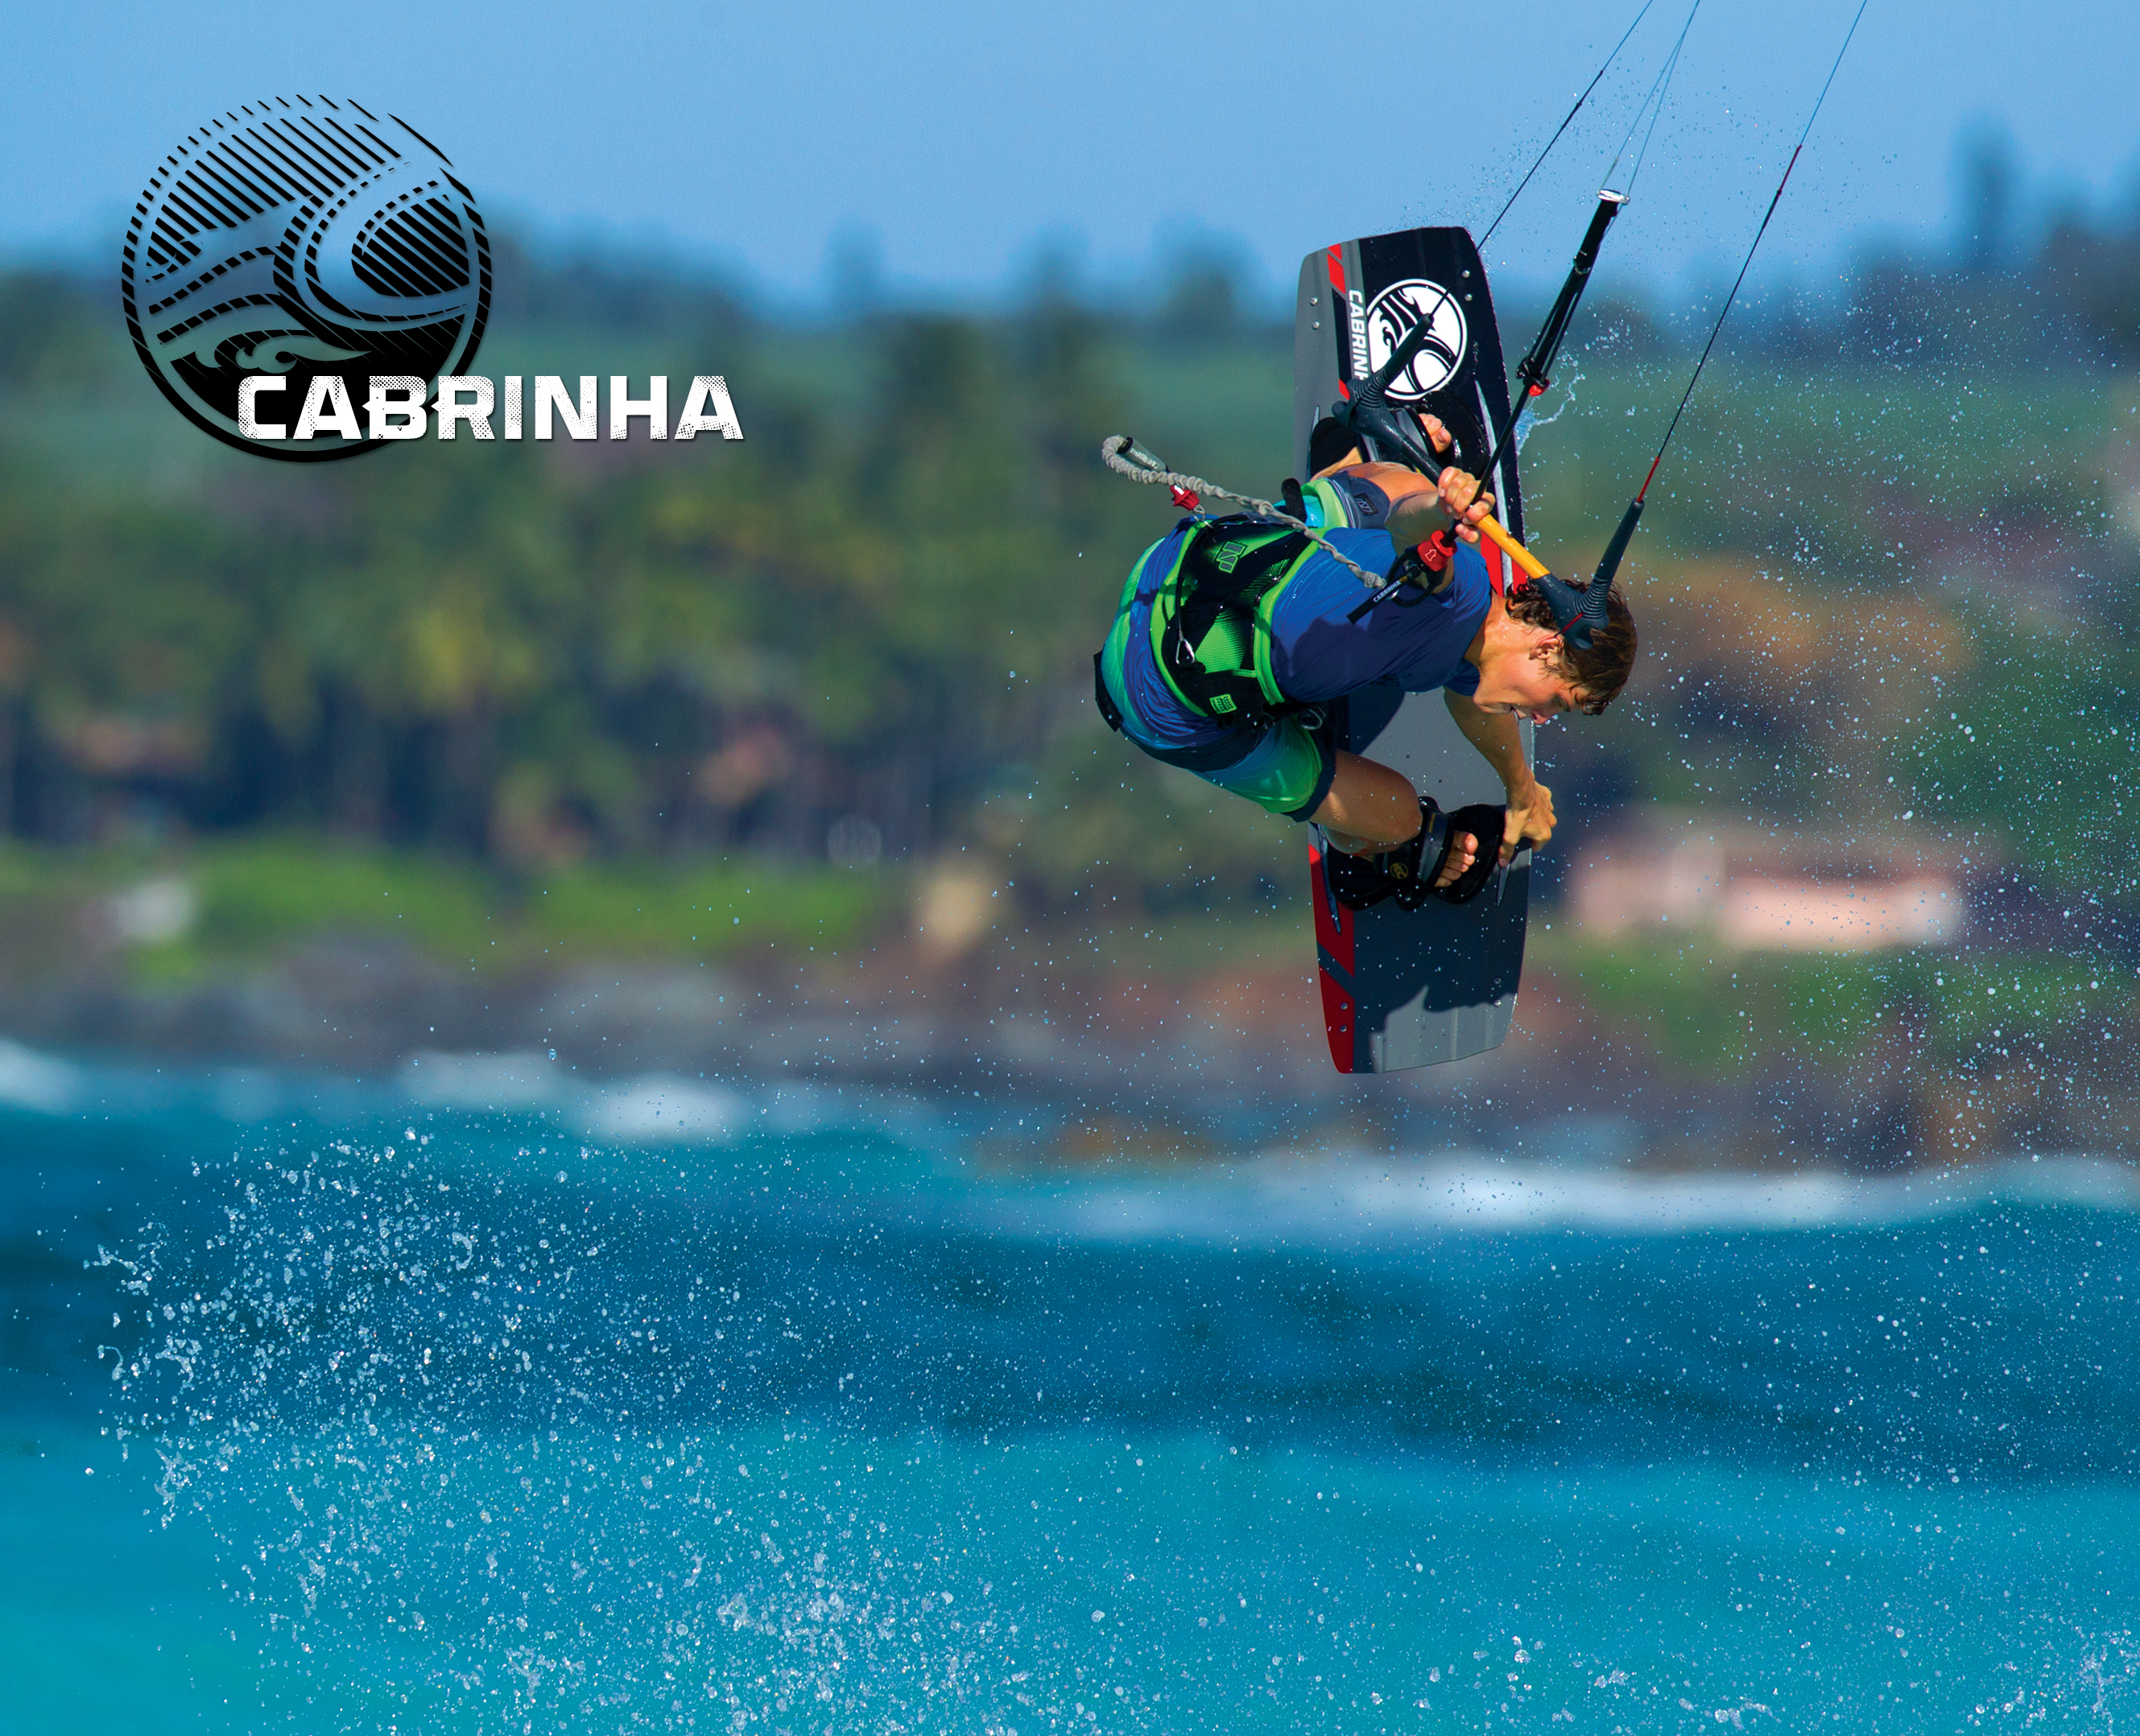 kitesurf wallpaper image - Liam Whaley on the 2015 Cabrinha Ace twintip with a nice board grab. - in resolution: Original 2658 X 2156